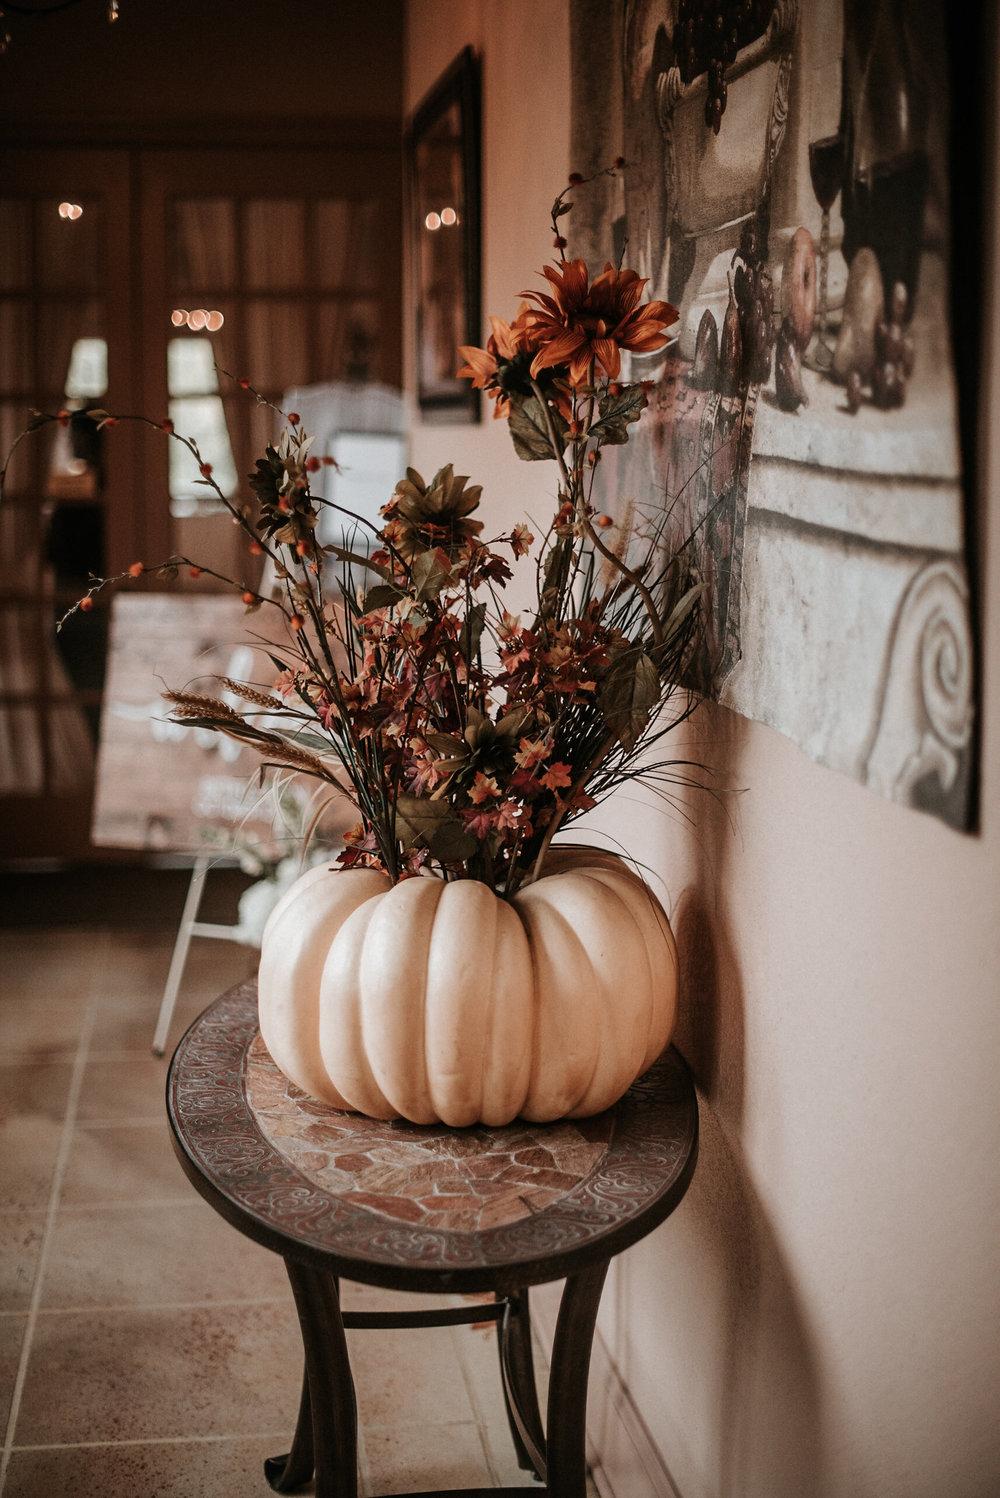 Pumpkin as wedding decor